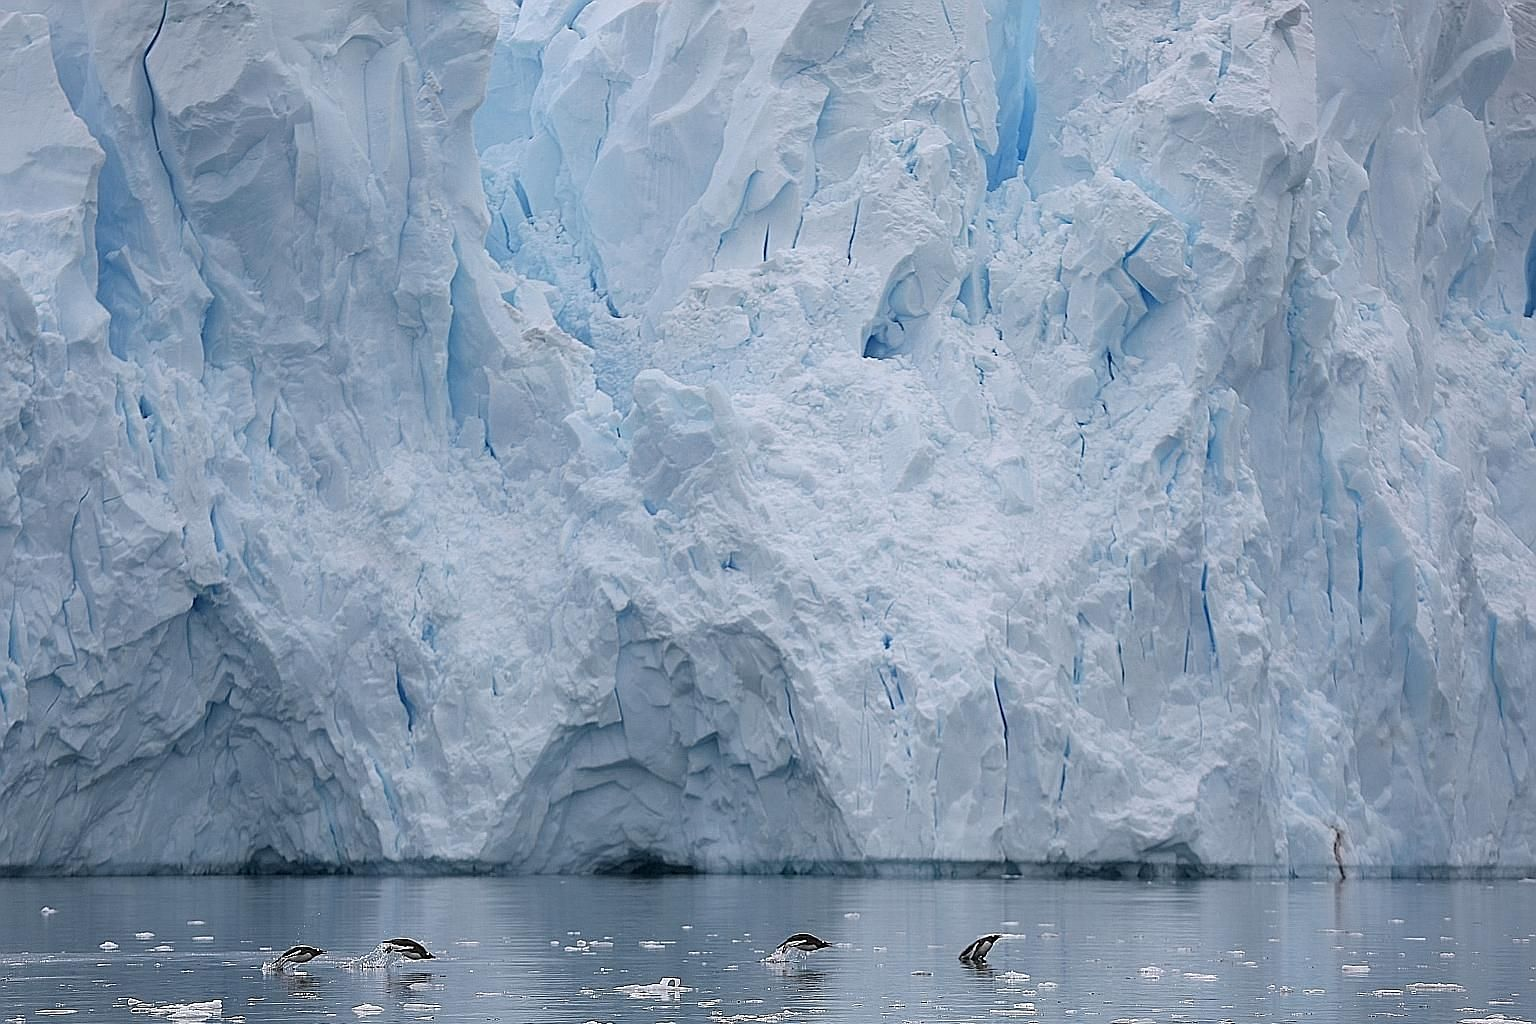 Penguins scrambling up a mountain on Danco Island in Antarctica, and swimming next to a glacier in Neko Harbour (right). A glacier in Half Moon Bay, Antarctica (left), and a section of a new map of the continent made with satellites owned by the Nati